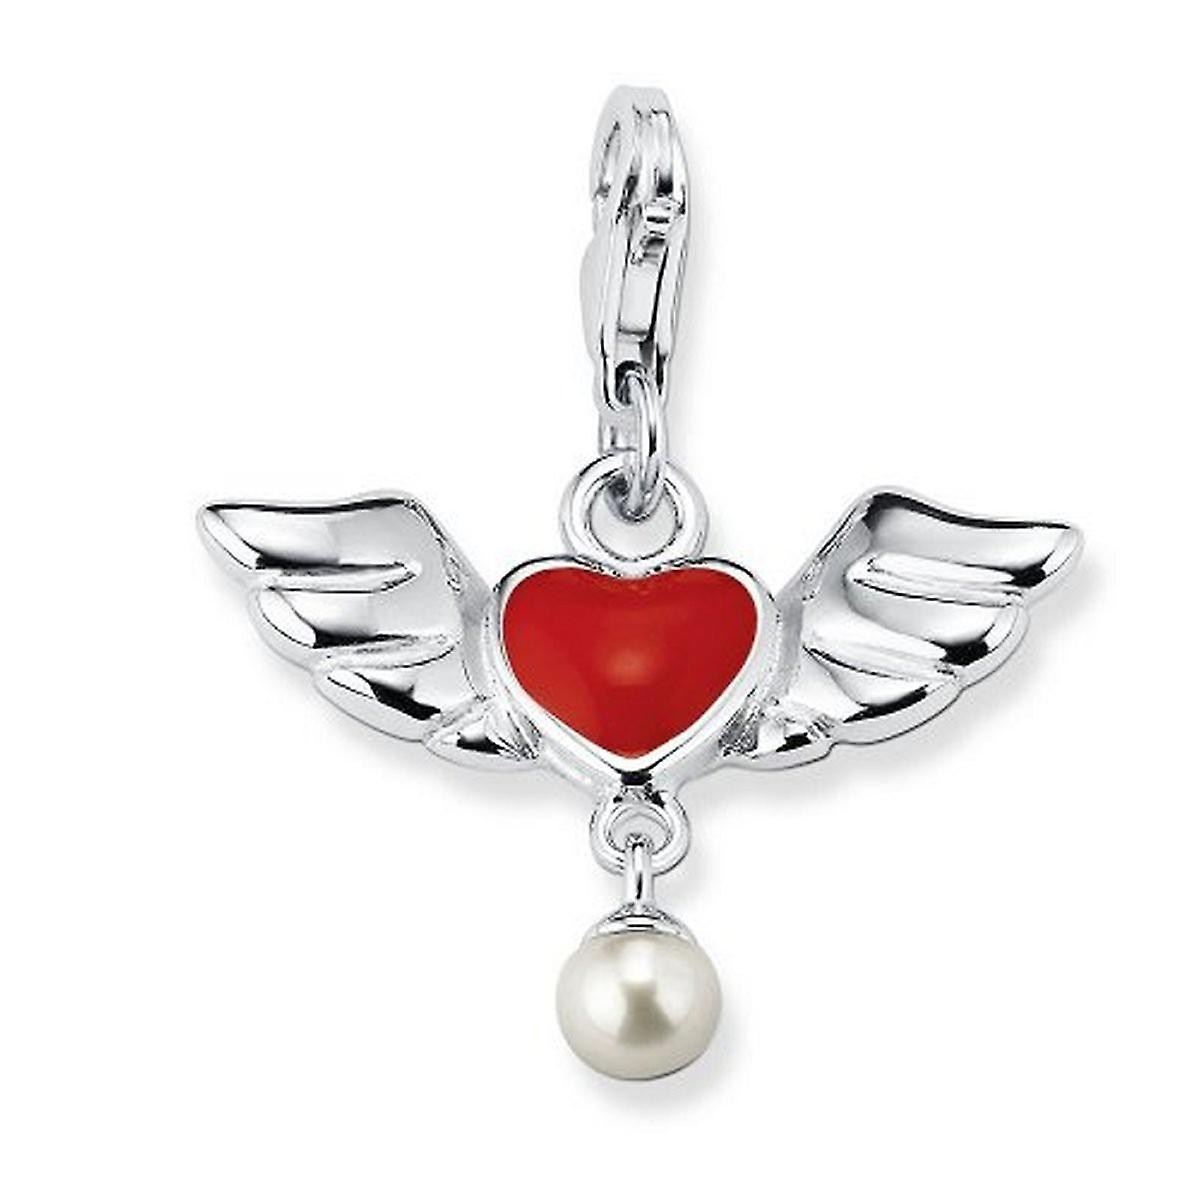 s.Oliver Jewel Ladies pendant silver heart wings SOCHA / 171-403474